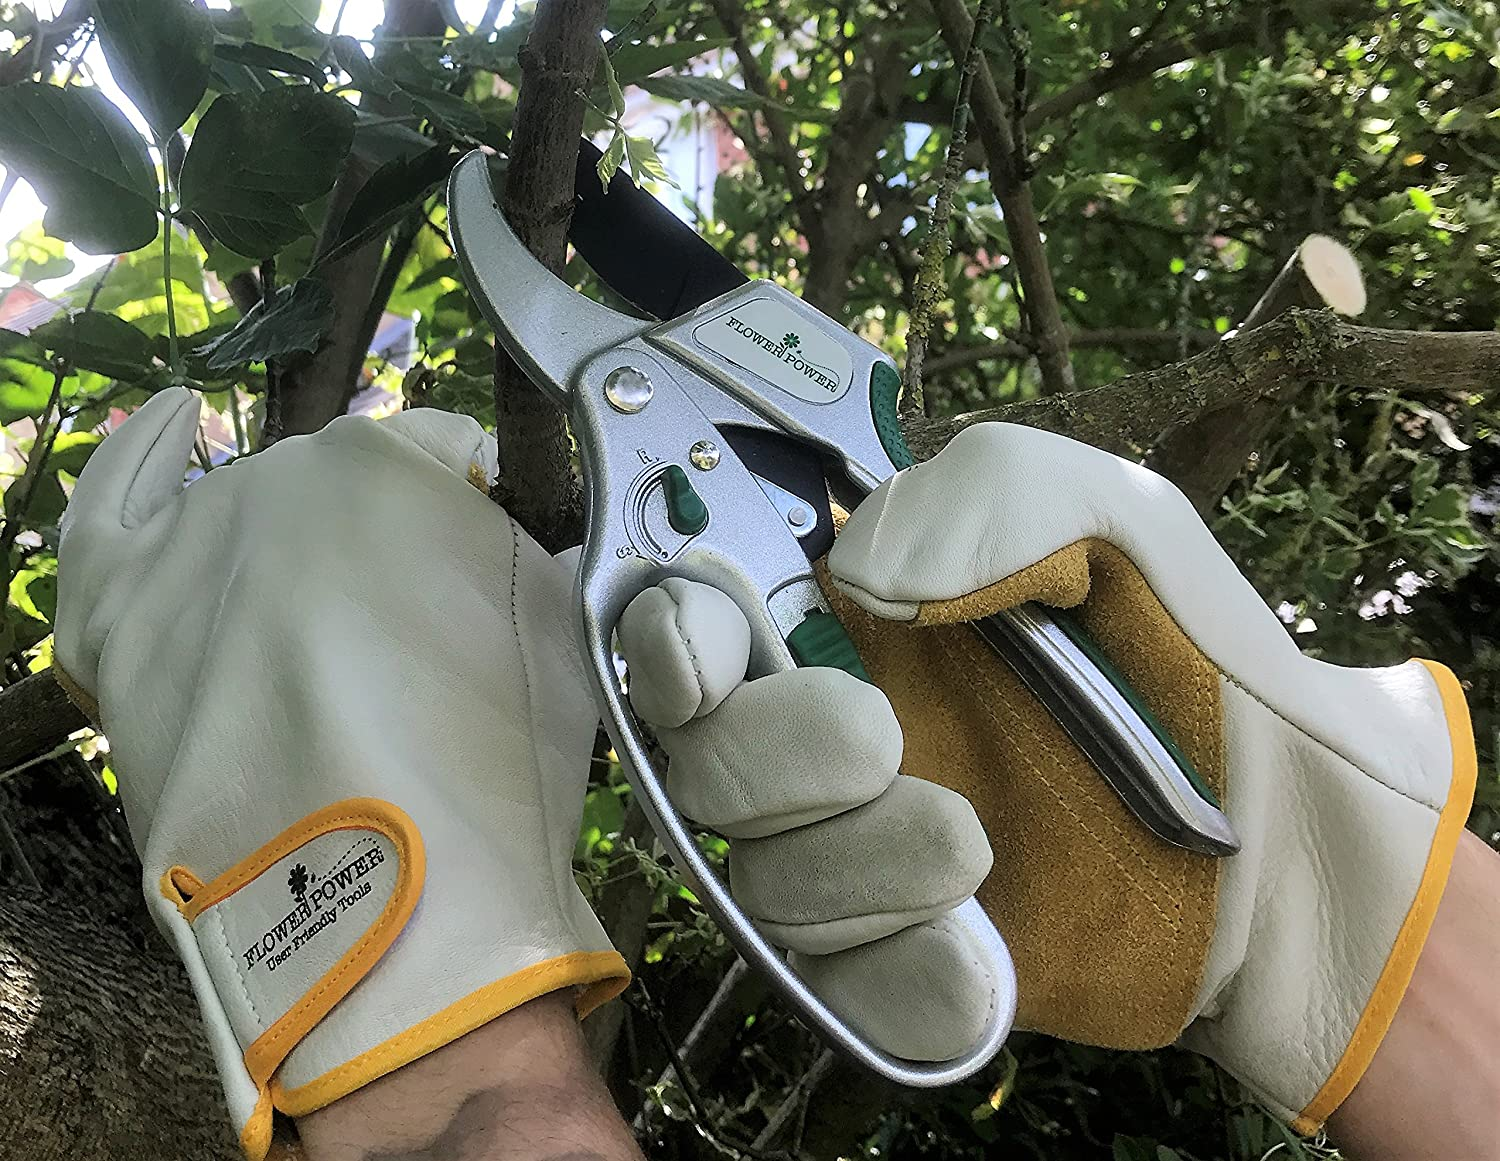 - Heavy Duty Work Gloves Perfect for Garden Tasks Medium or Large Agriculture and General Maintenance Medium Premier Leather Gardening Gloves for Men Perfect Gardening Gift for Men.